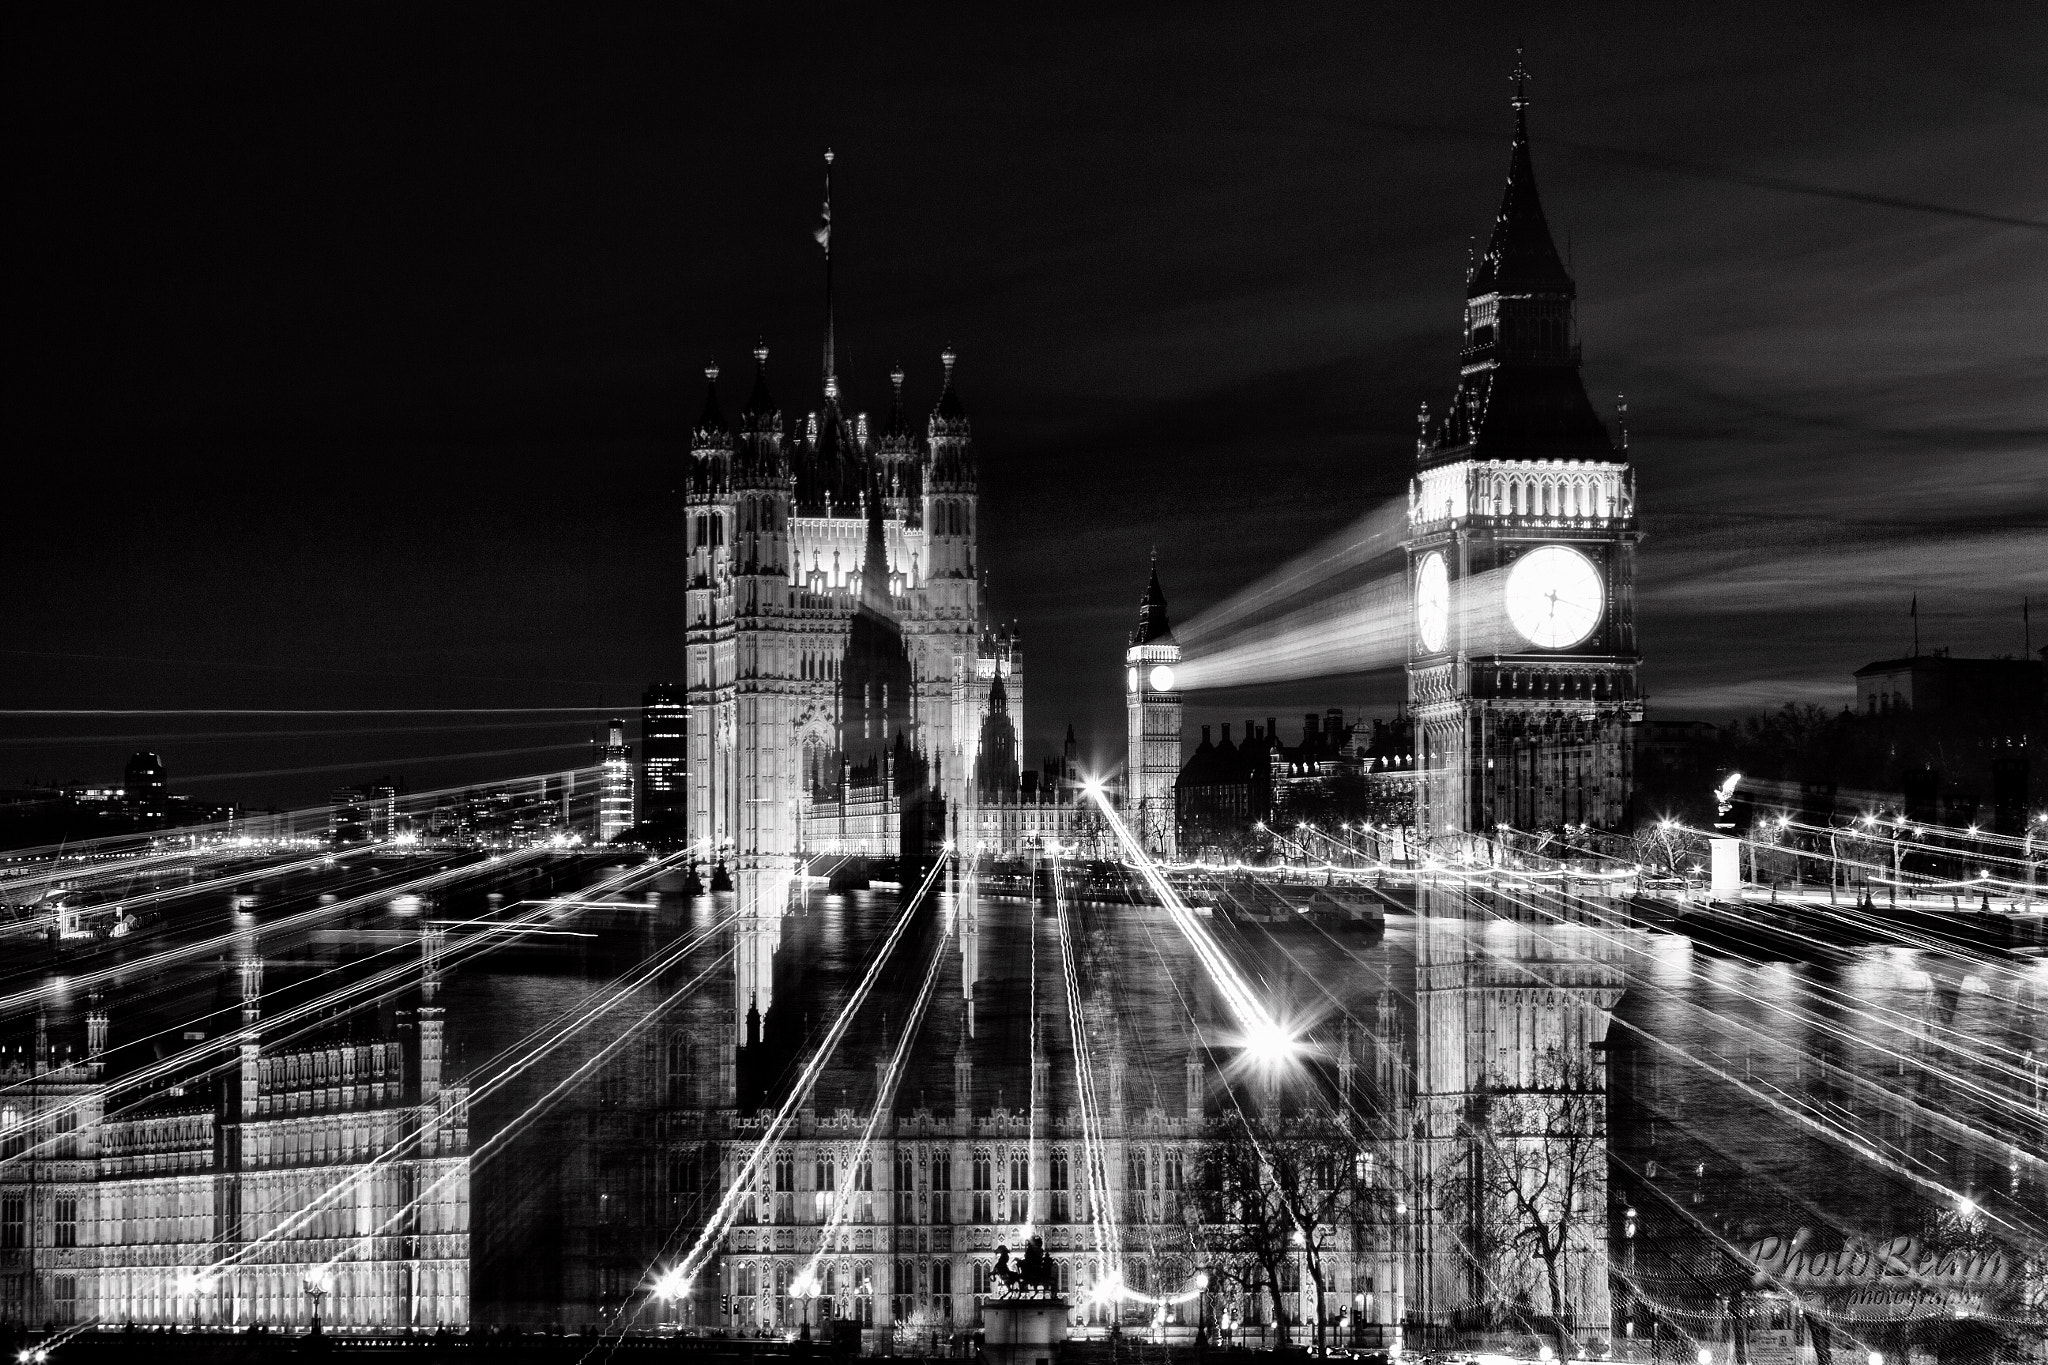 Photograph London motion by Arvis PhotoBeam on 500px